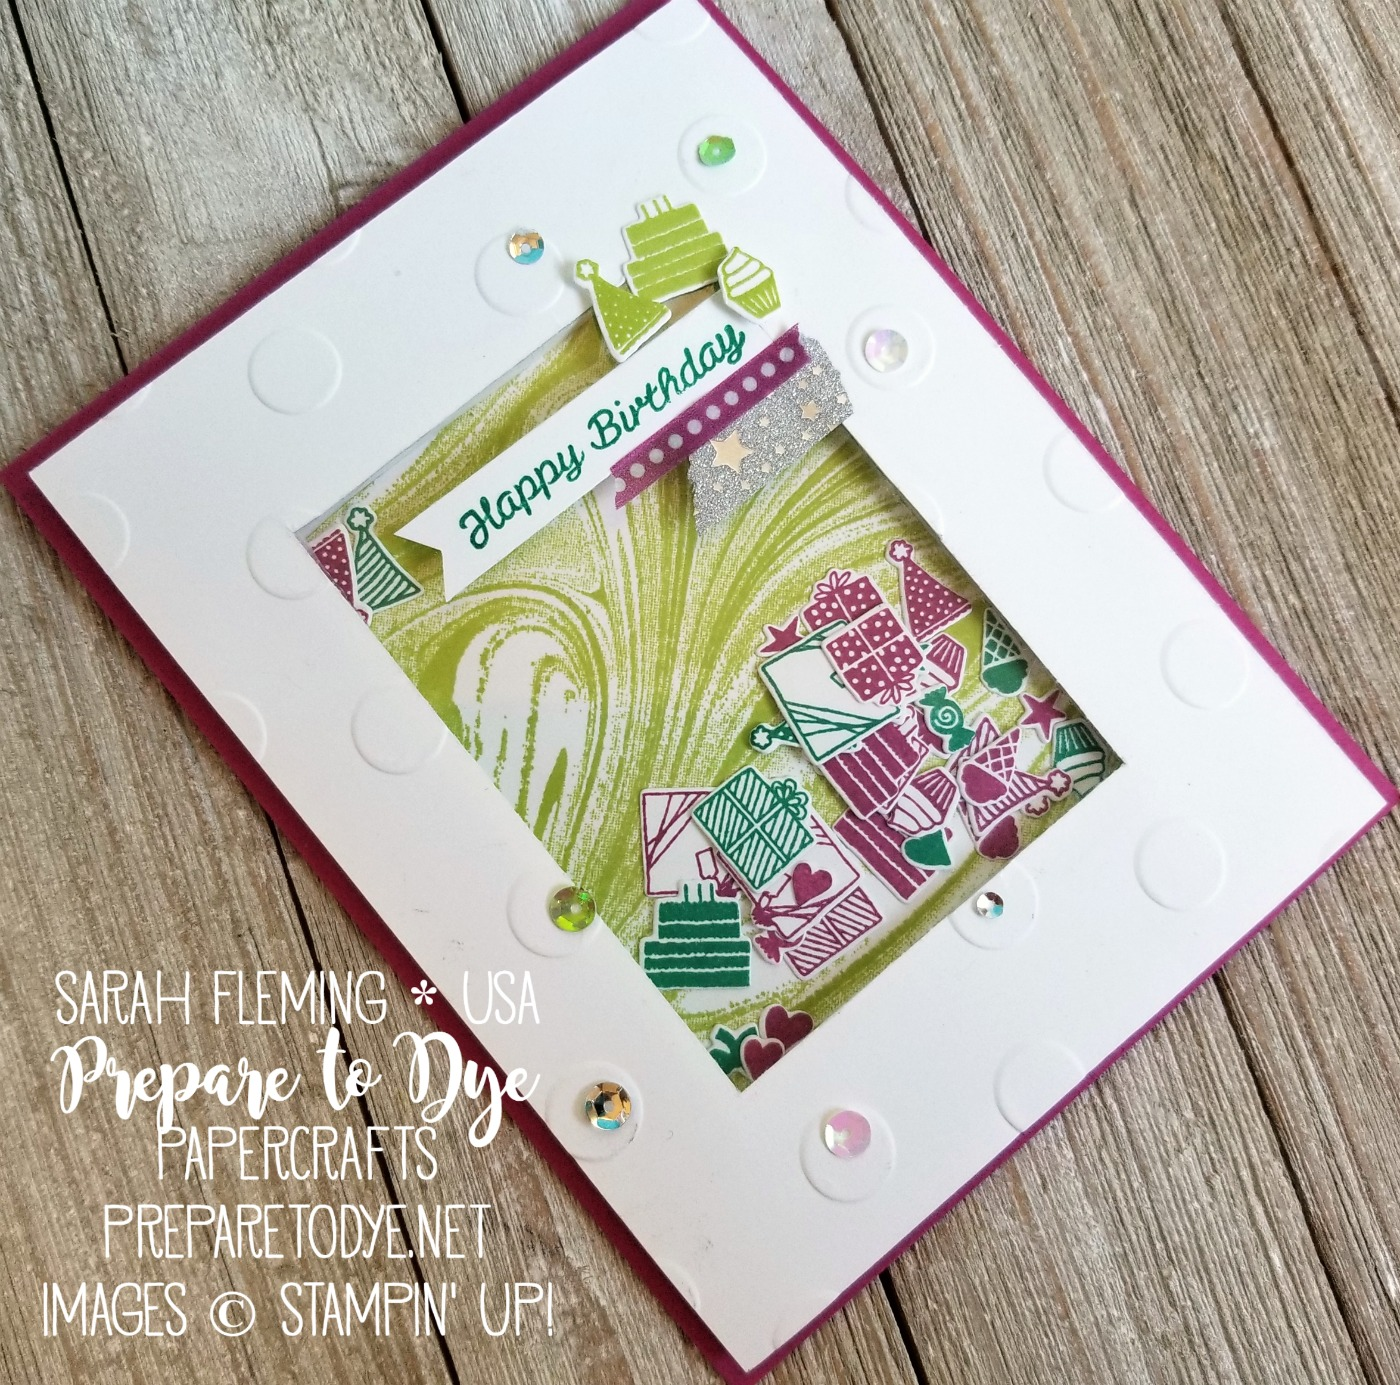 Stampin' Up! handmade birthday shaker card using Party Hat Birthday & Party Hat Builder framelits, Marbled background stamp, washi tape - Sarah Fleming - Prepare to Dye Papercrafts